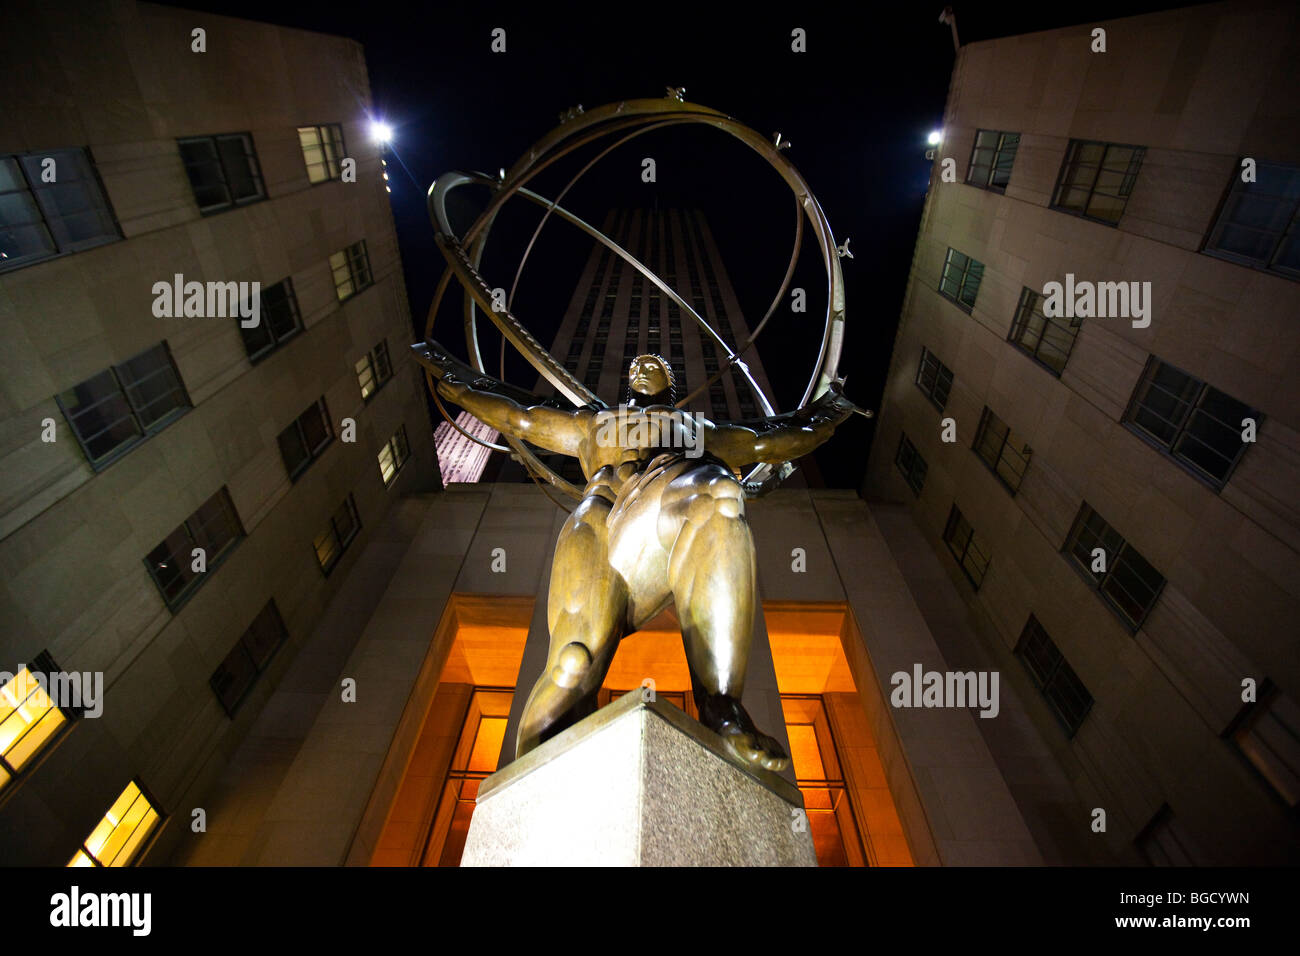 Atlas Statue at Rockefeller Center in New York City - Stock Image